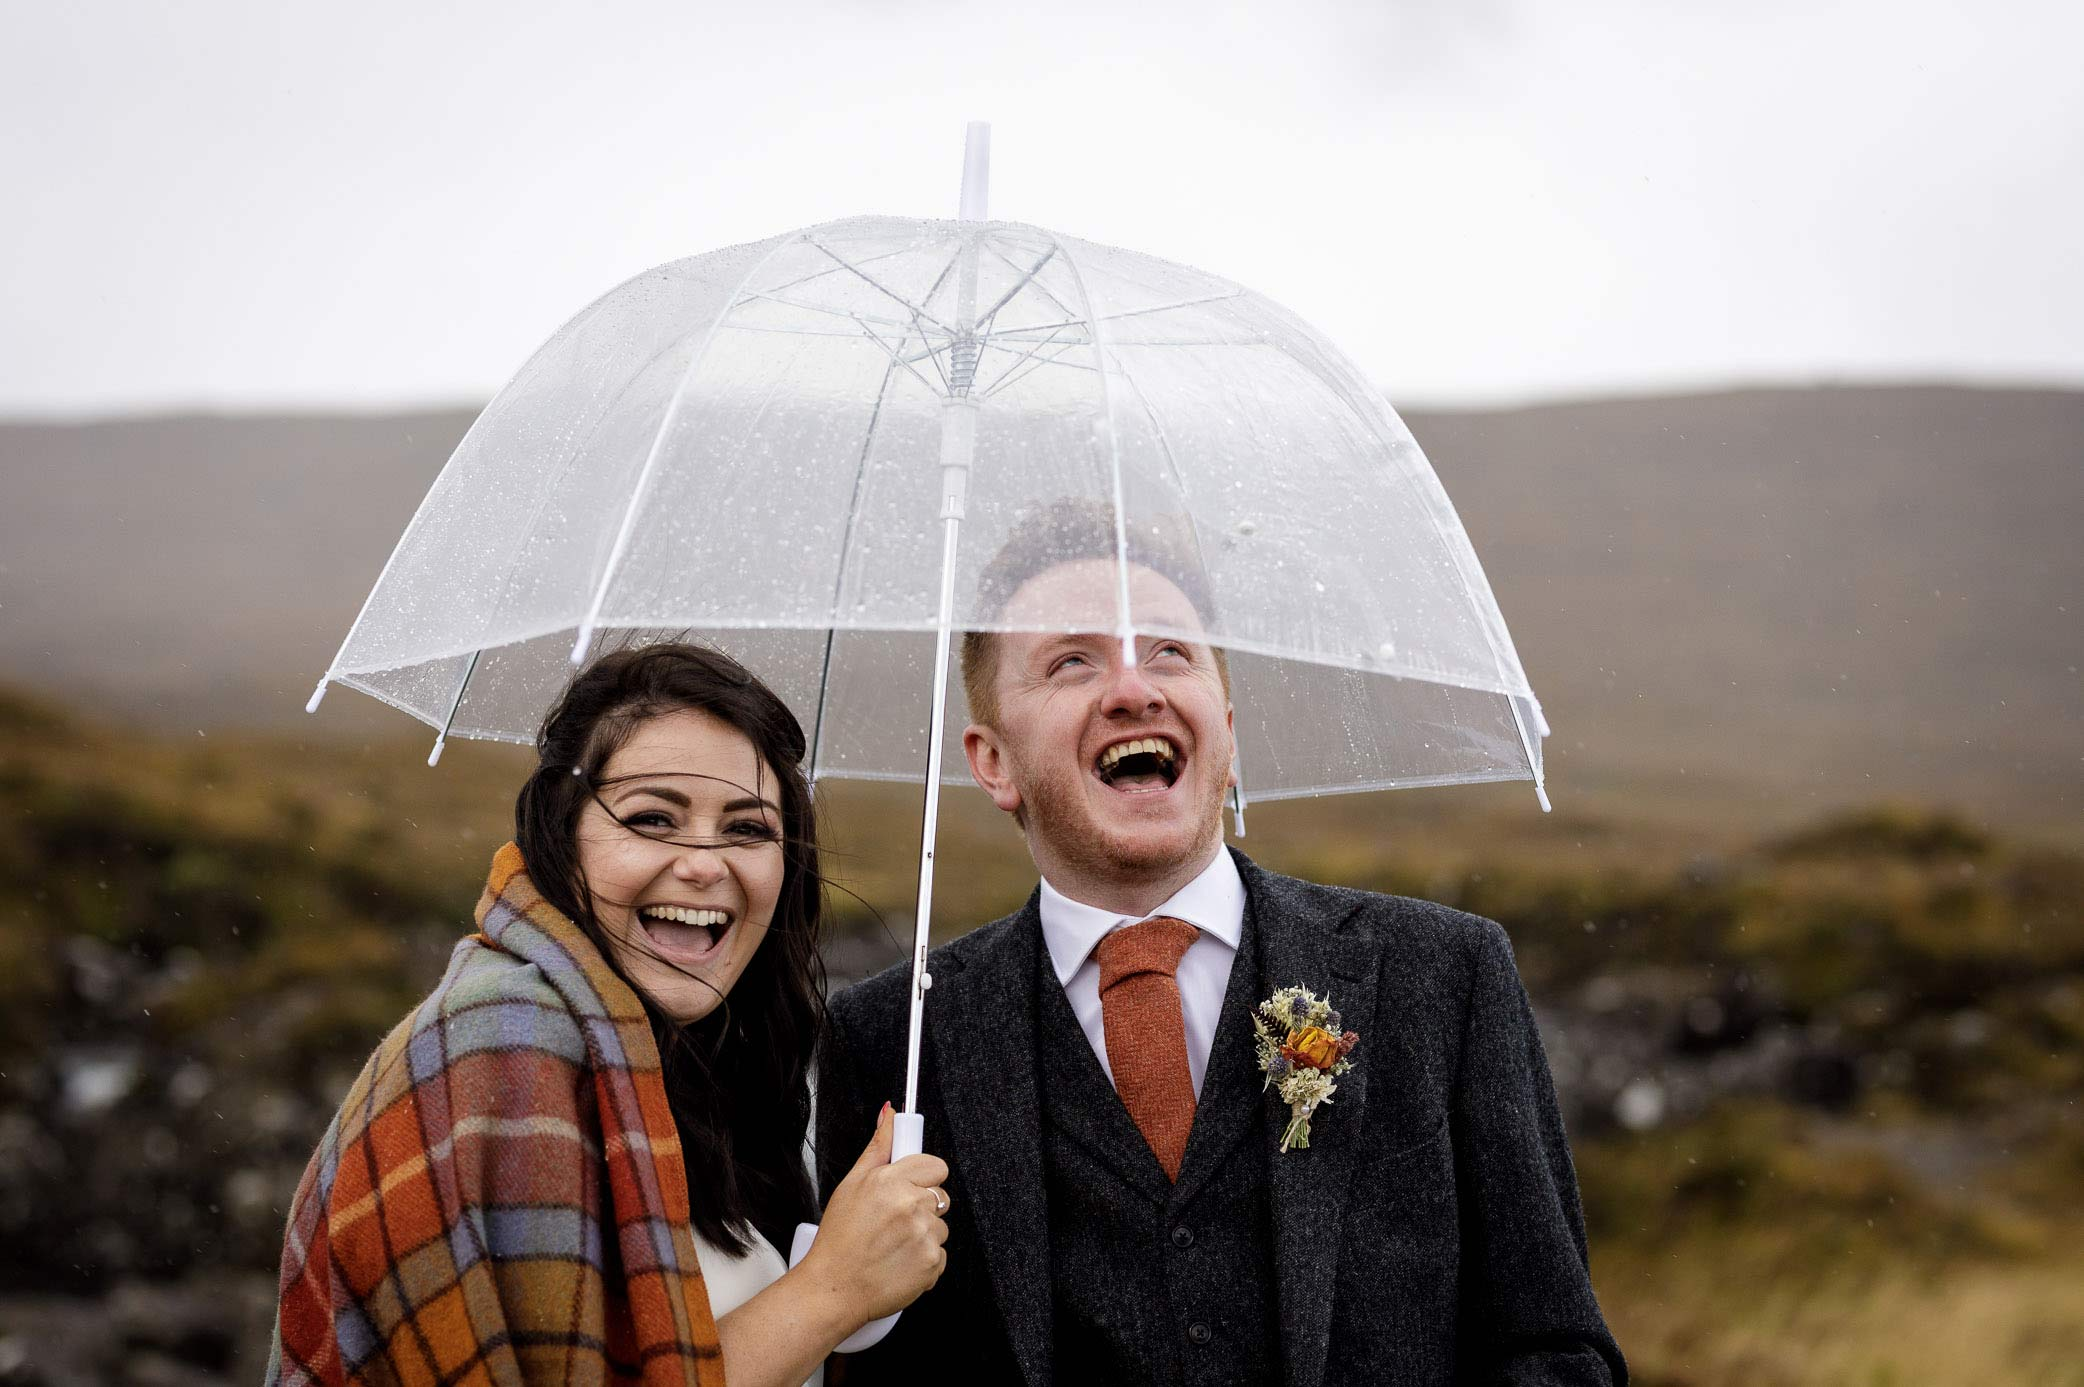 Man and woman smiling under an umbrella